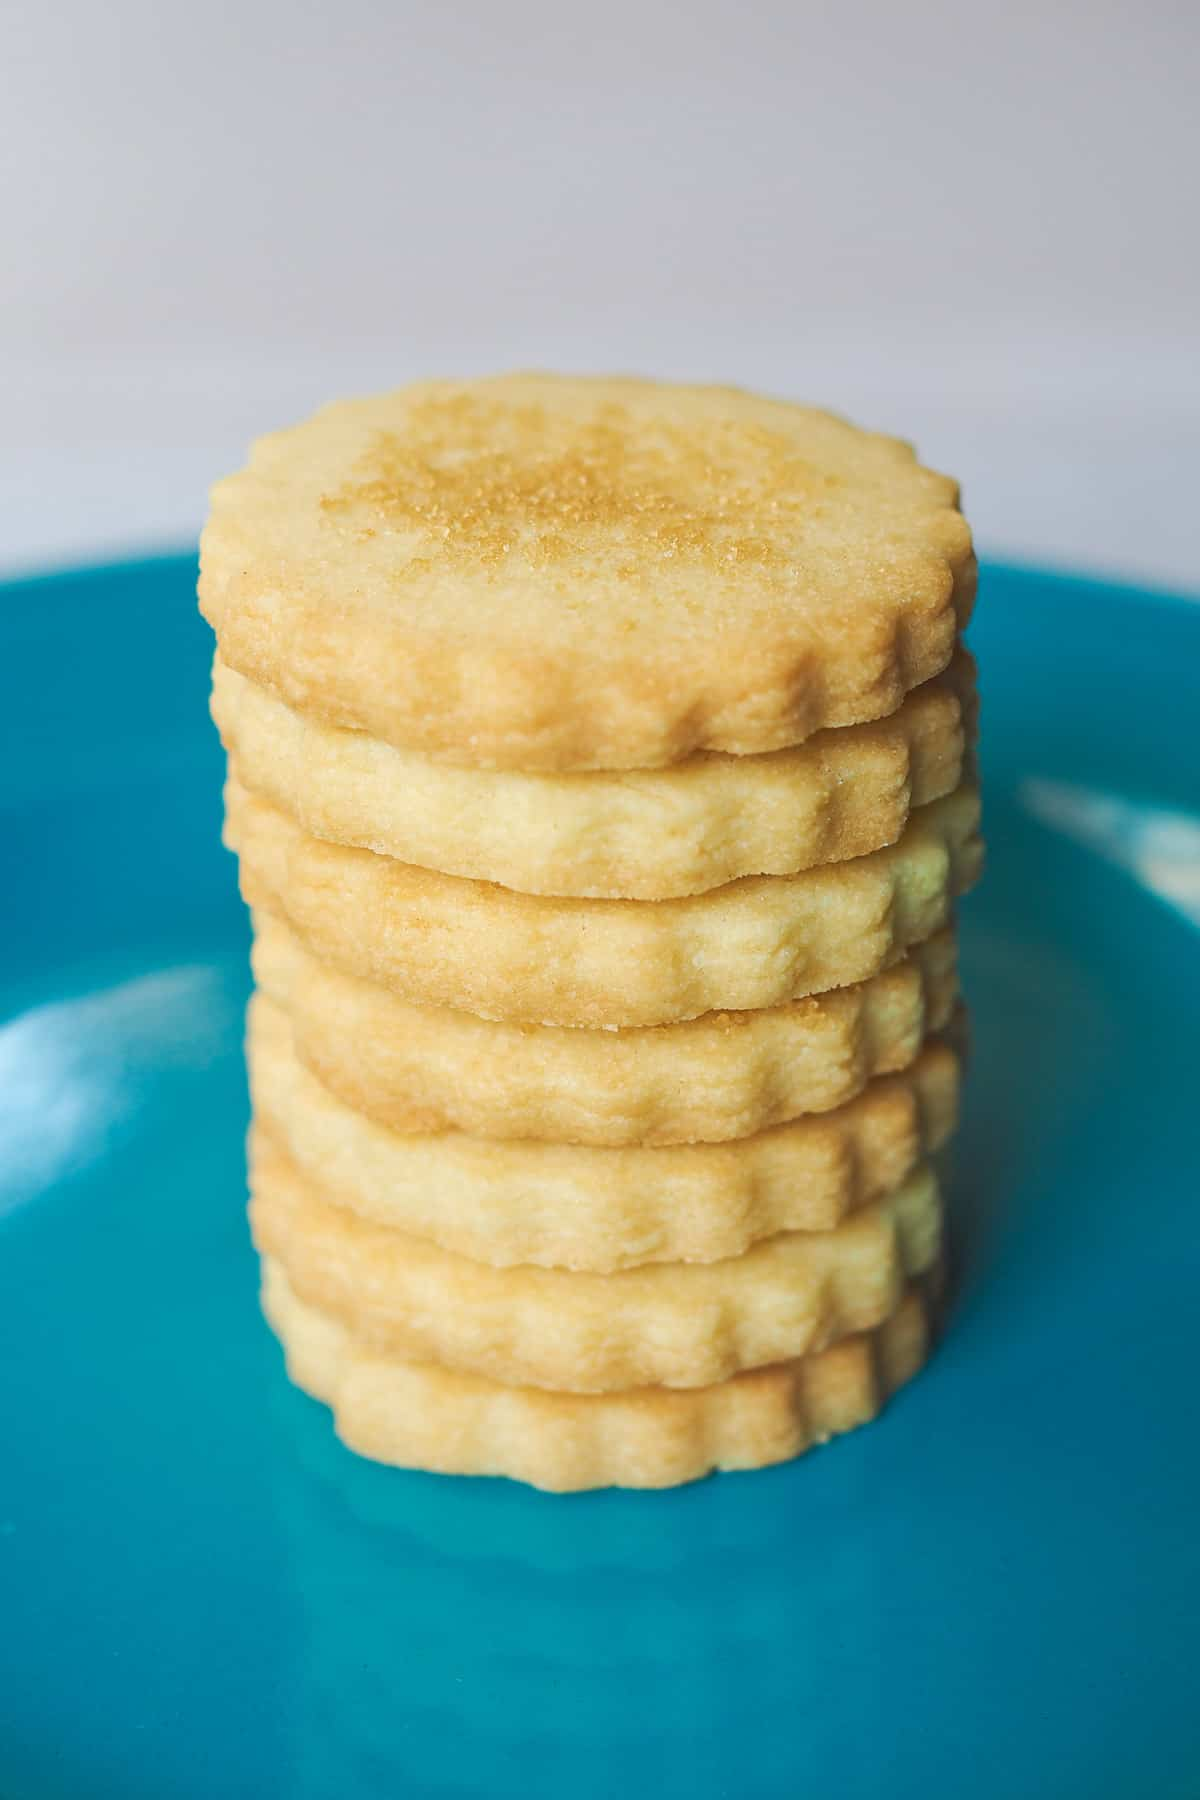 Scalloped cut out cookies staked on a blue plate